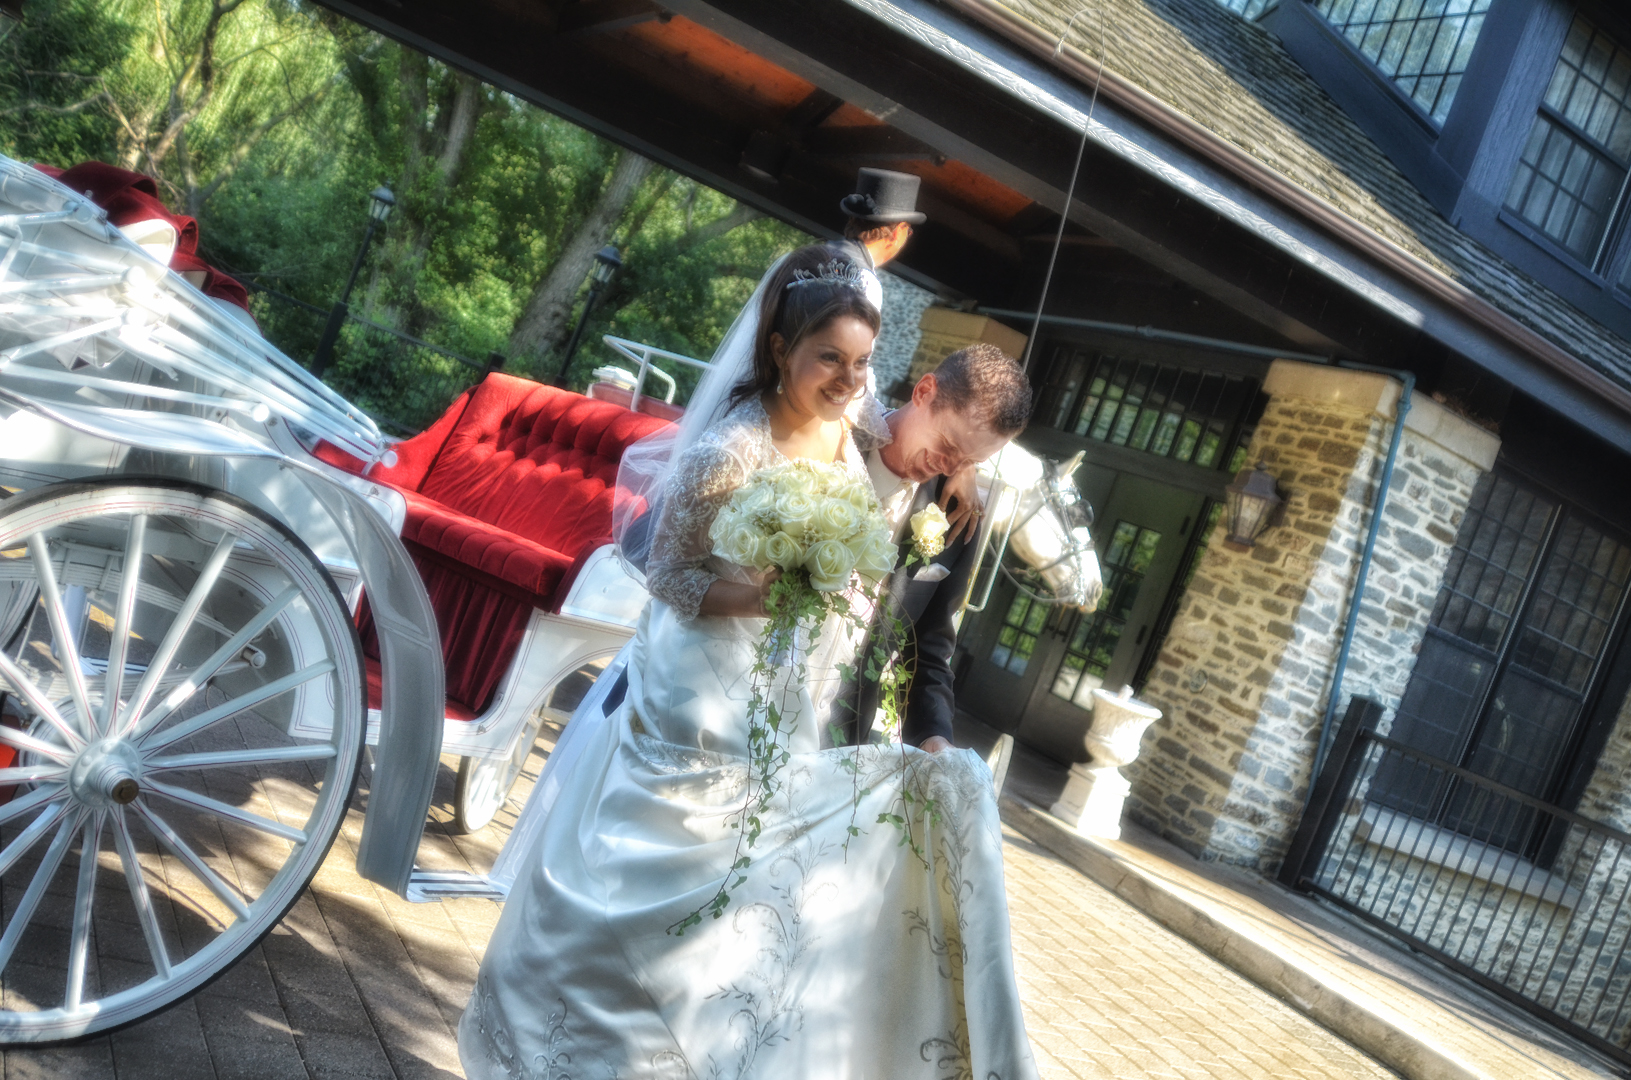 Wedding Photography And Video At The Old Mill Spa Amp Inn Photographic Memories